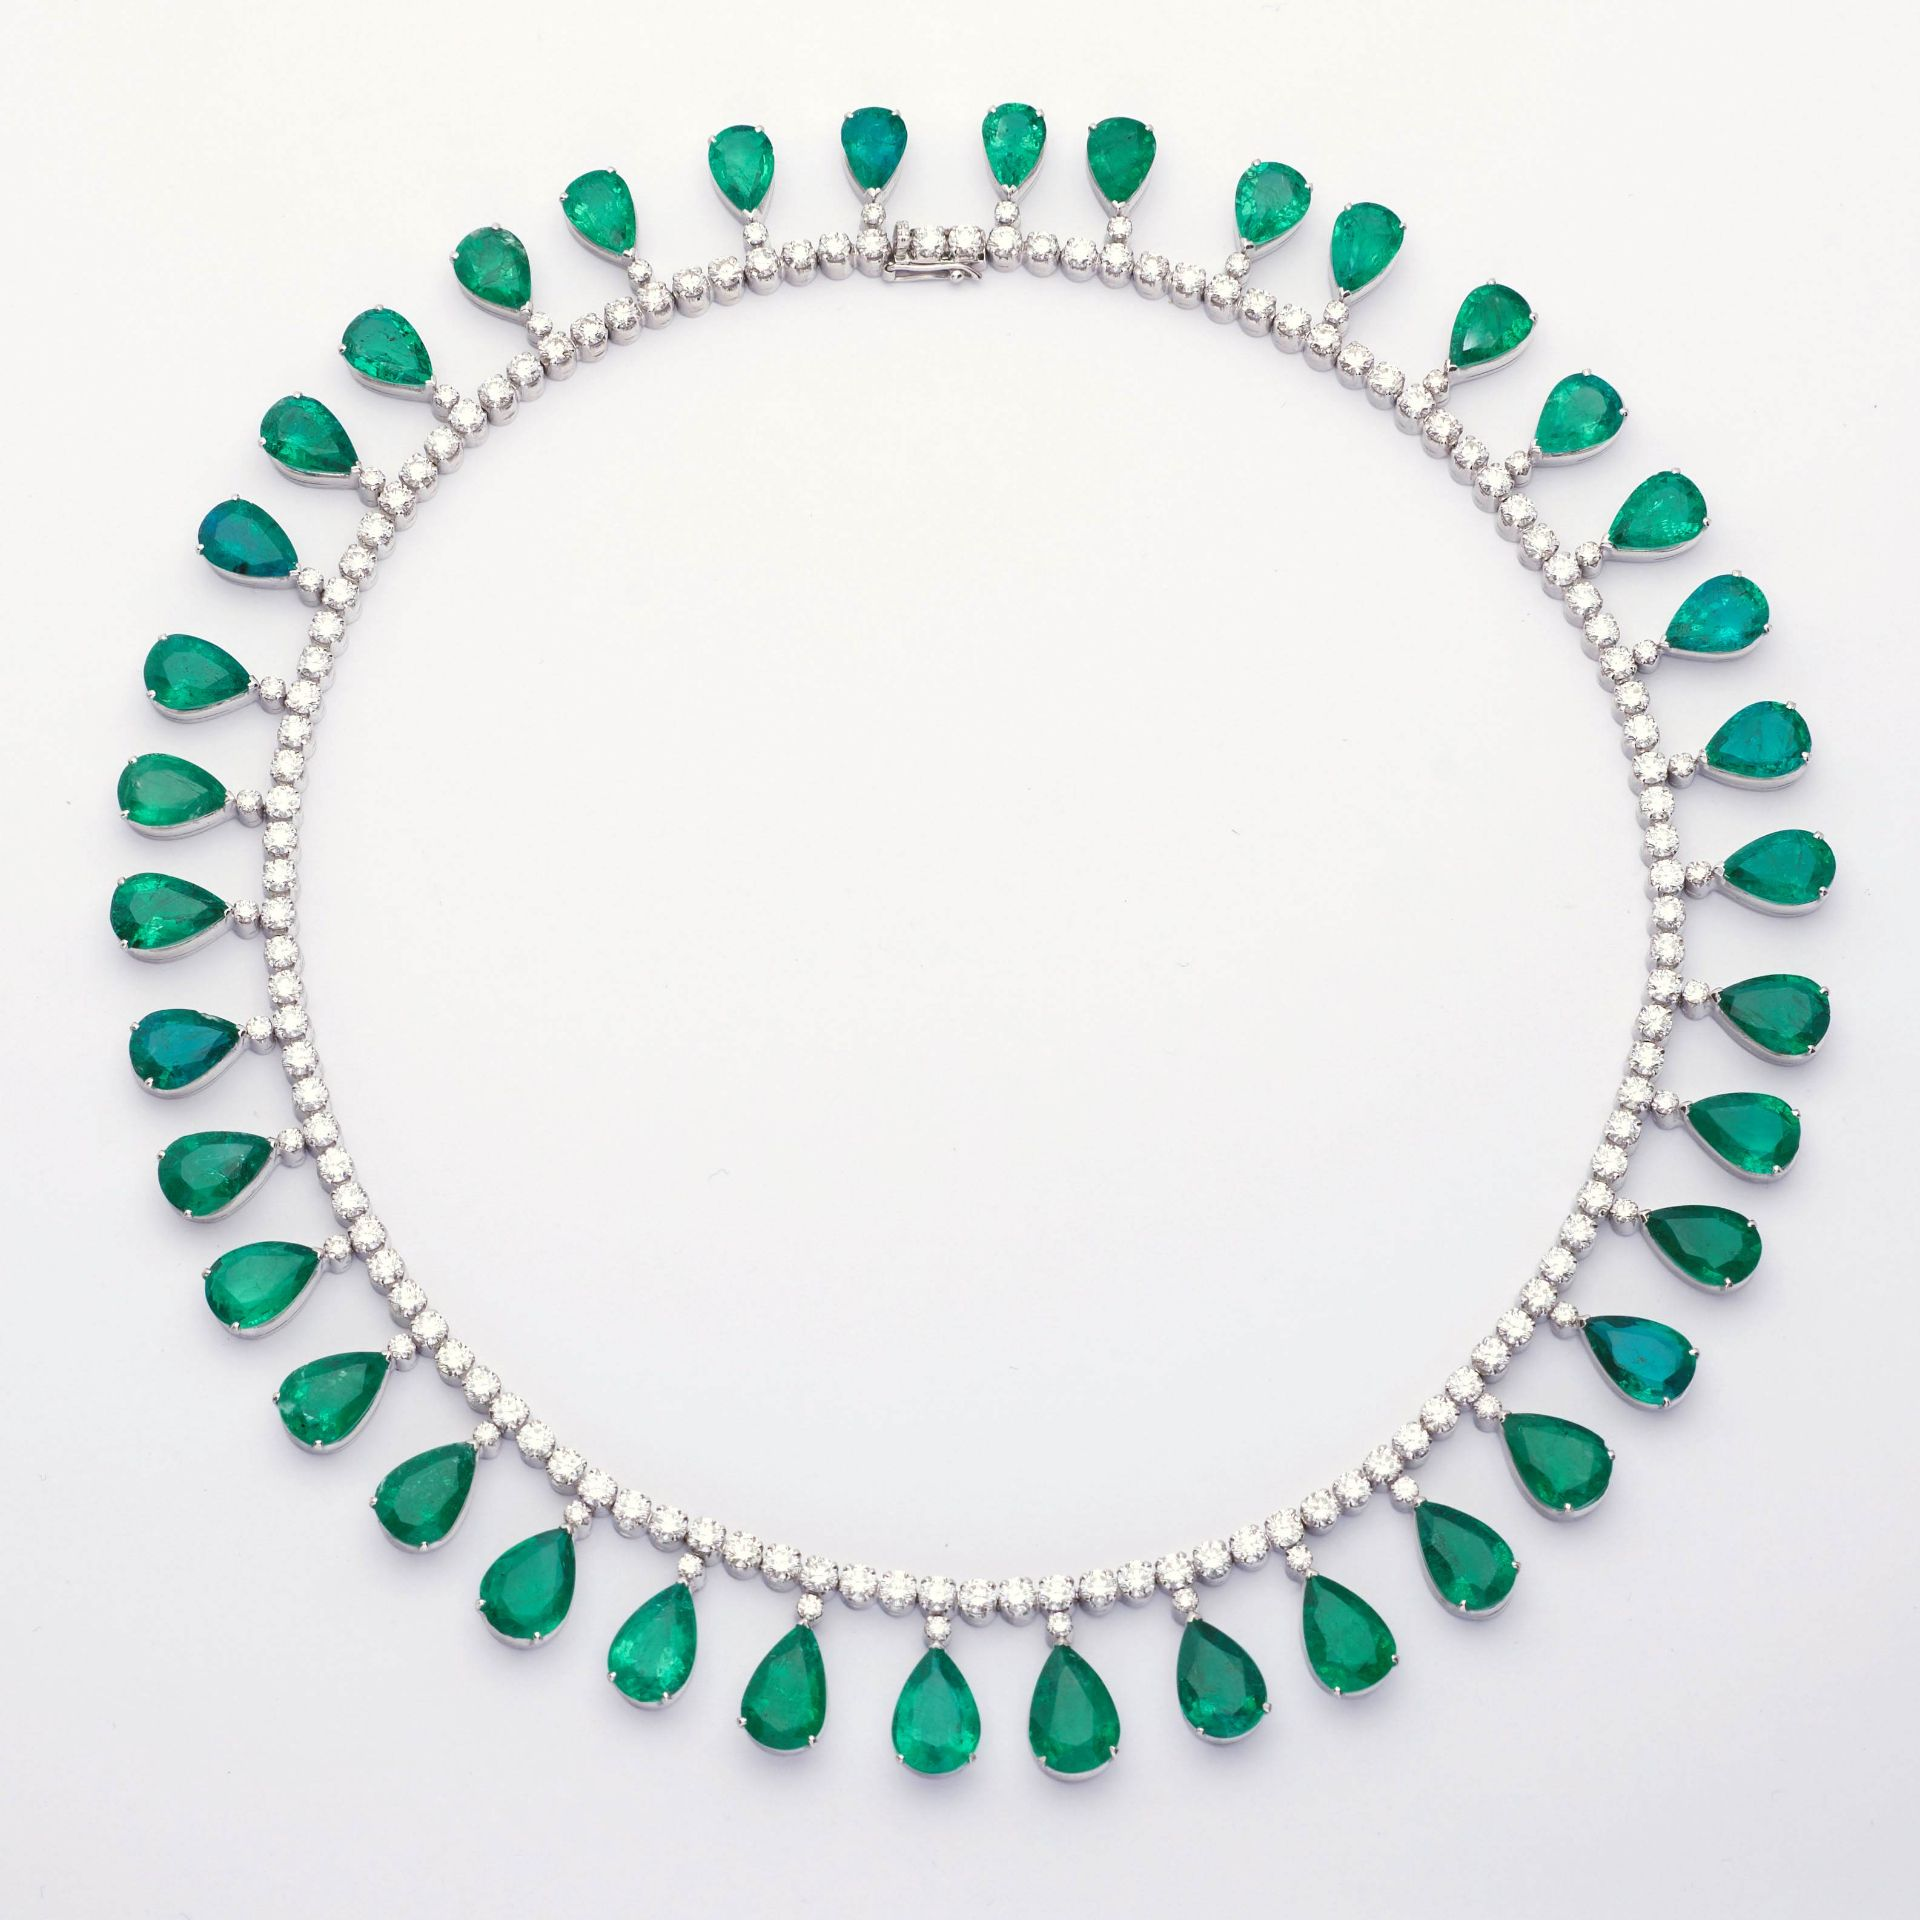 EMERALD AND DIAMOND NECKLACE. - Image 2 of 3